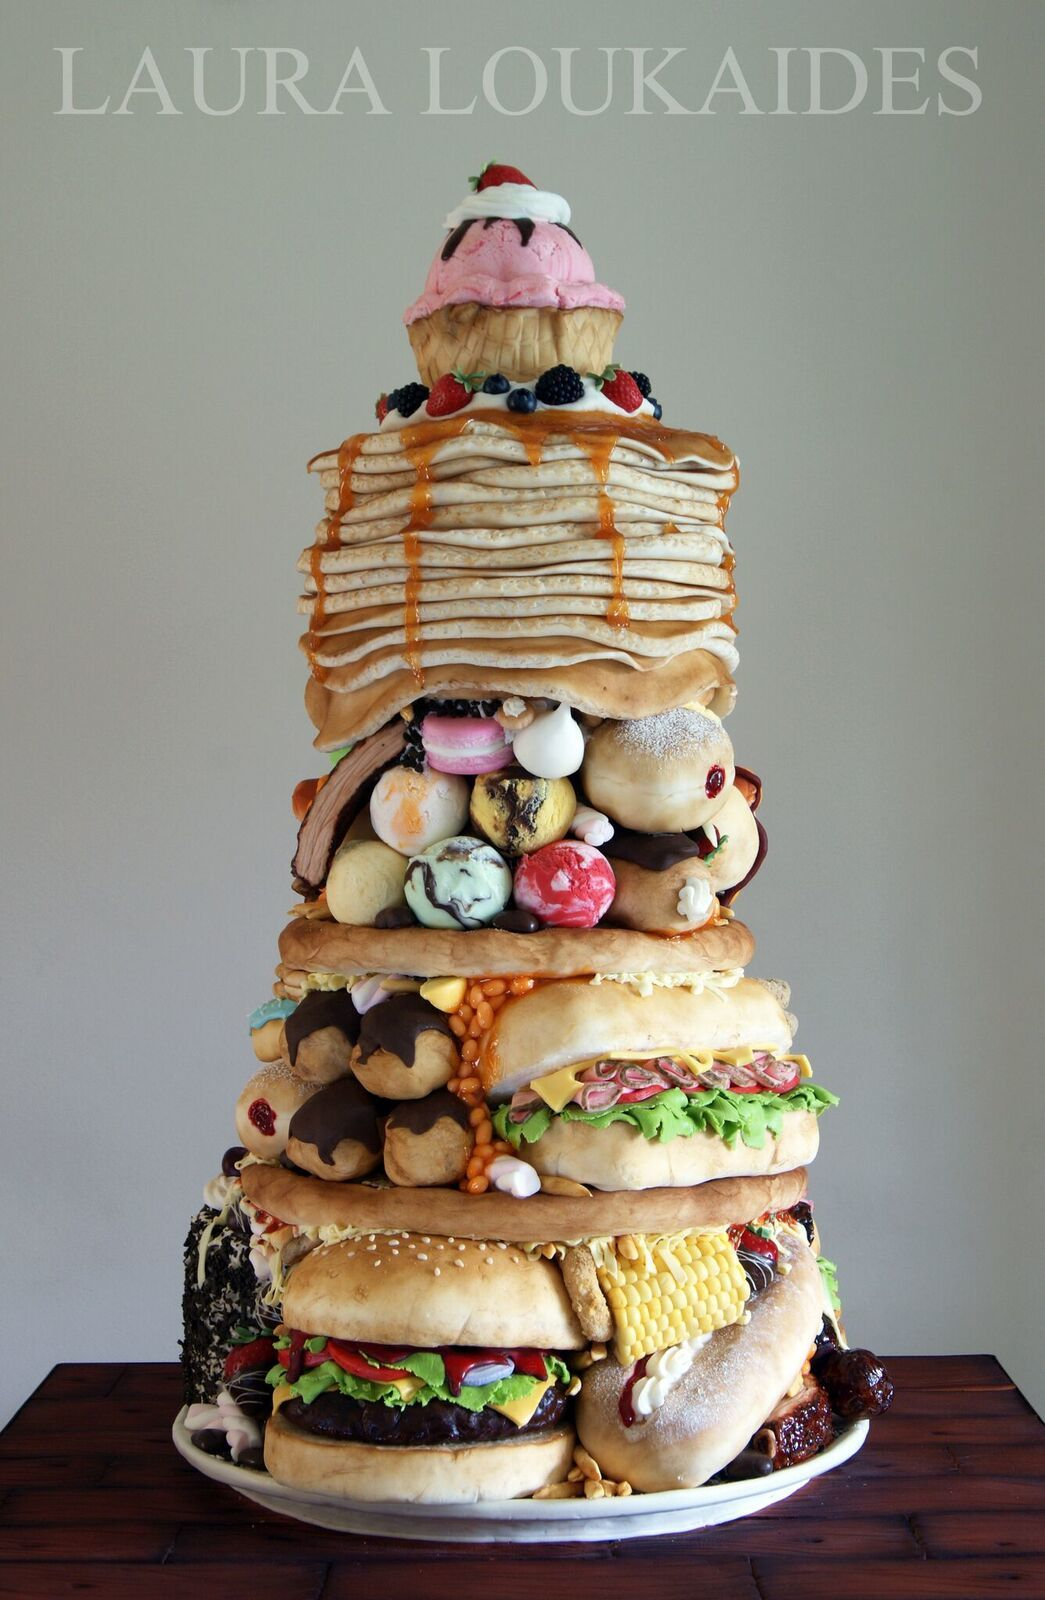 Stack of junk food cake